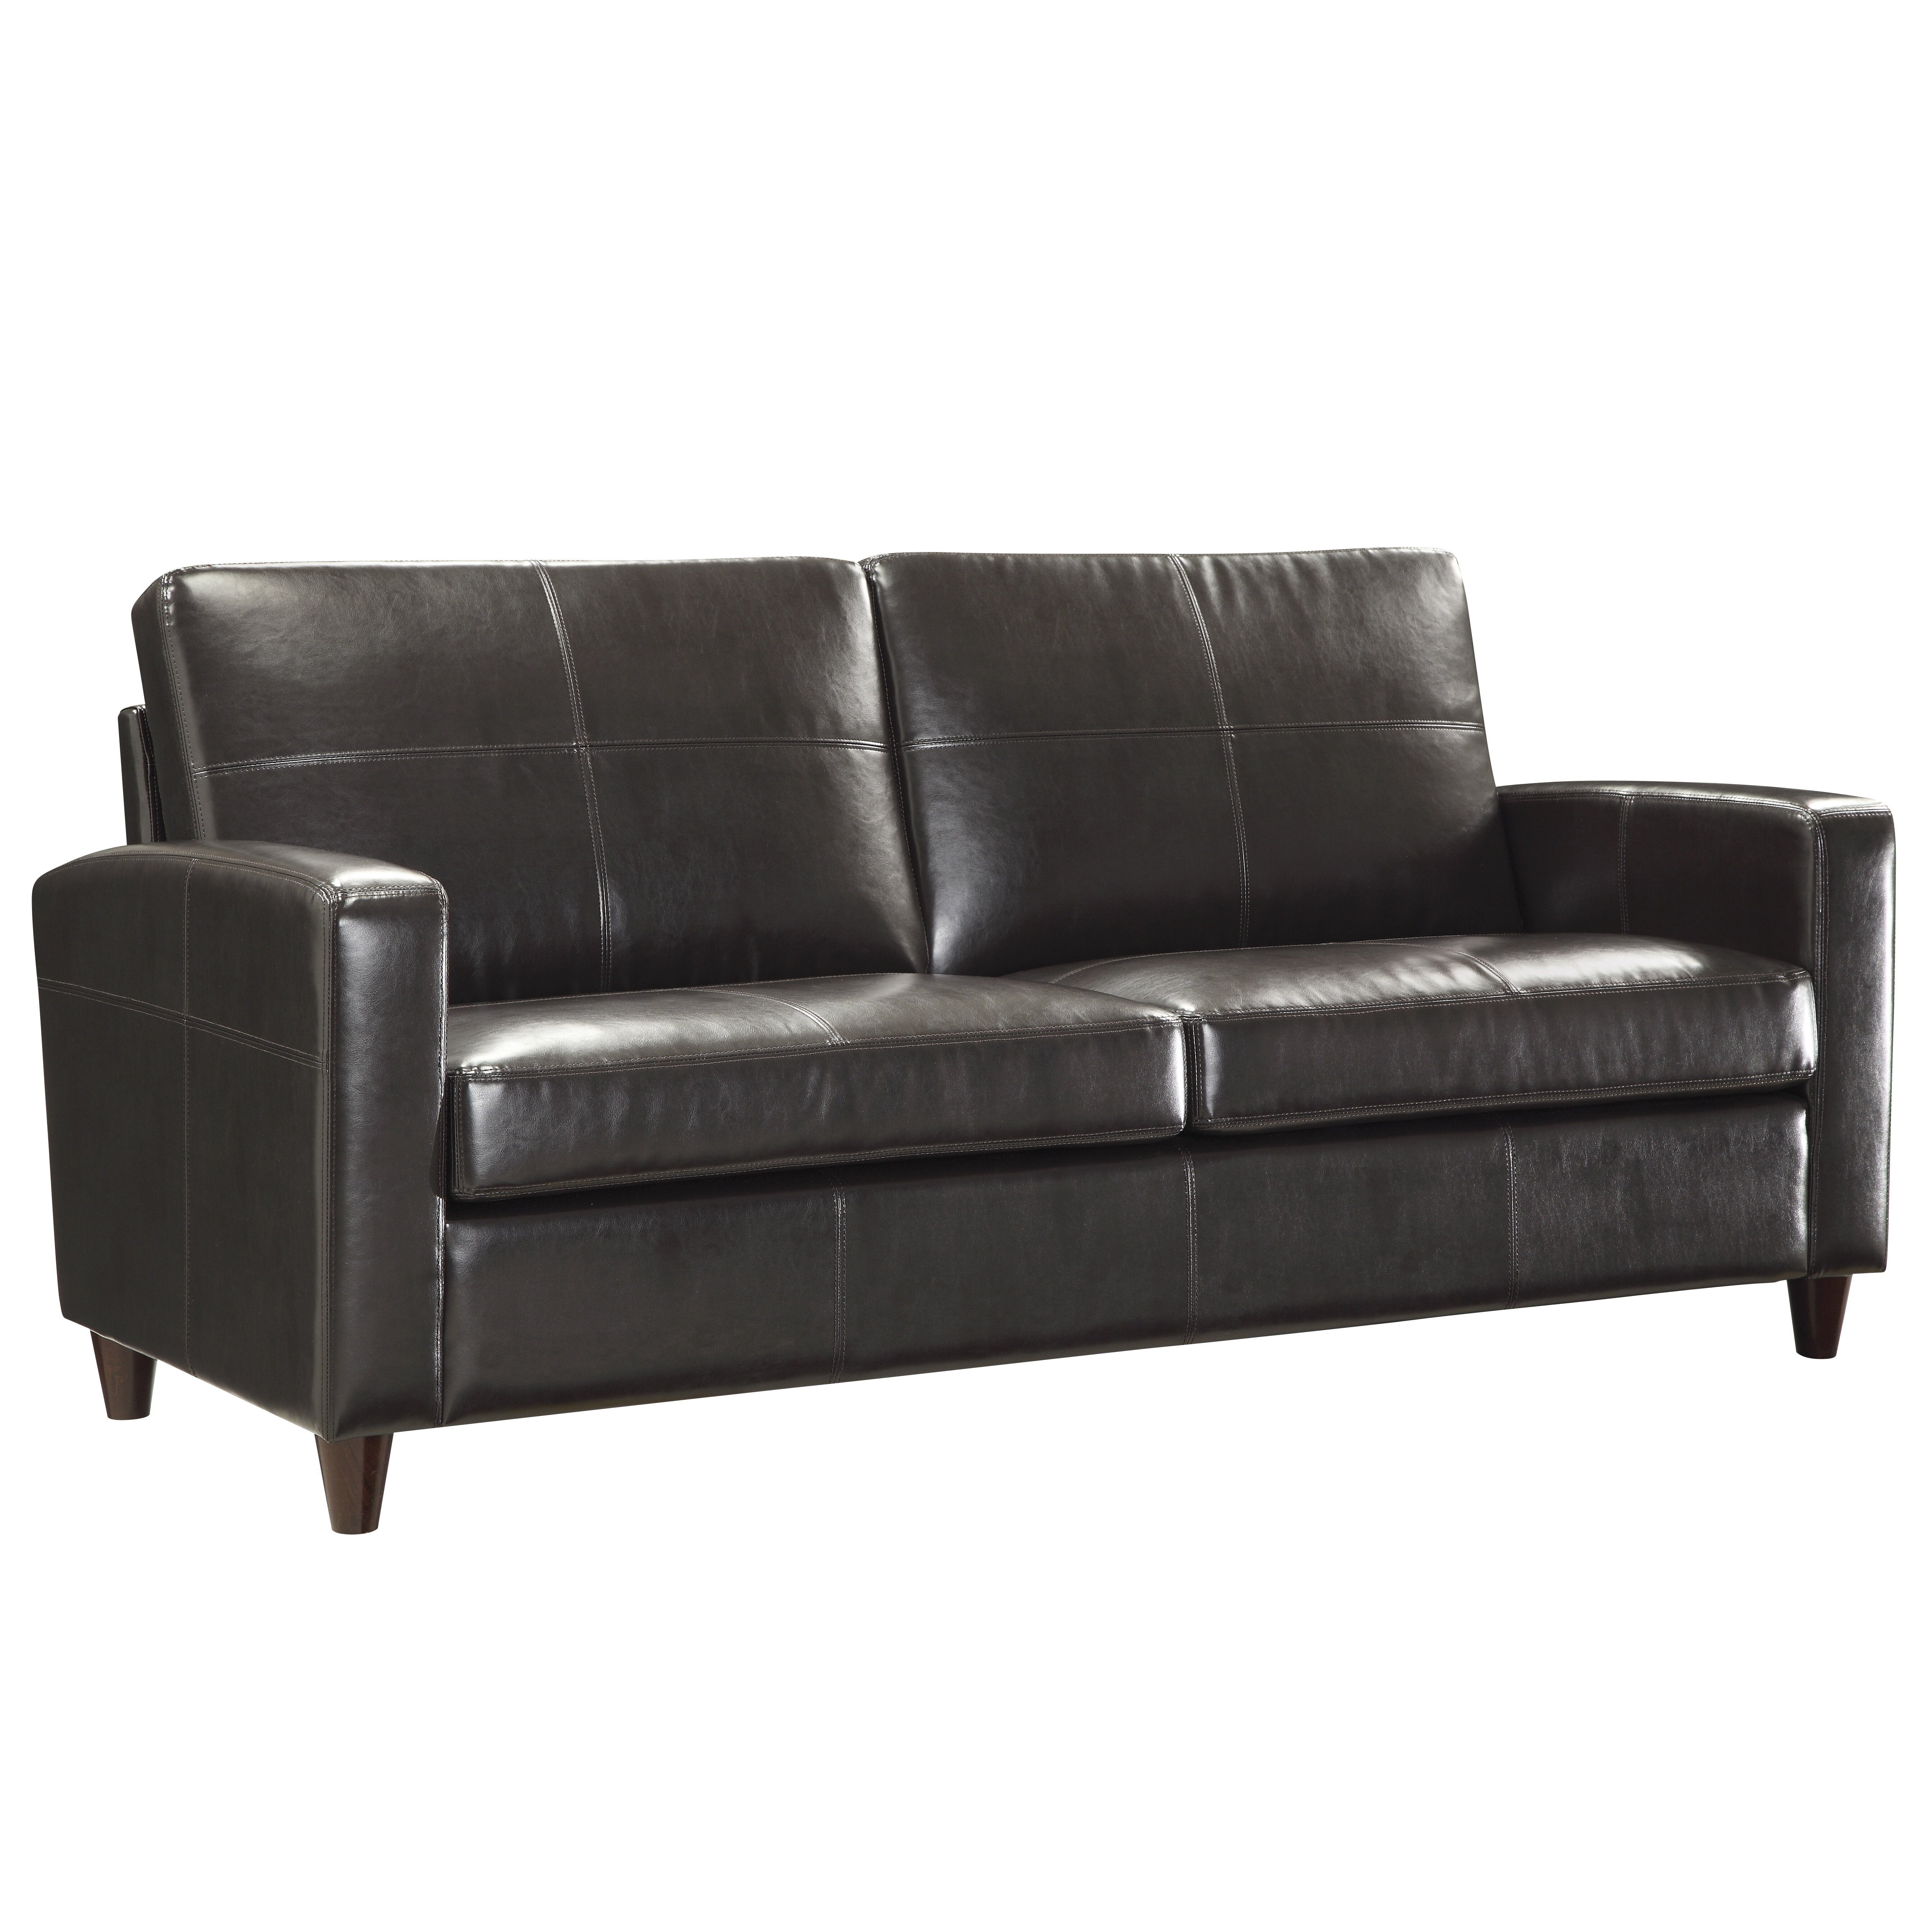 Reviews For Leather Sofas: Office Star Leather Sofa & Reviews